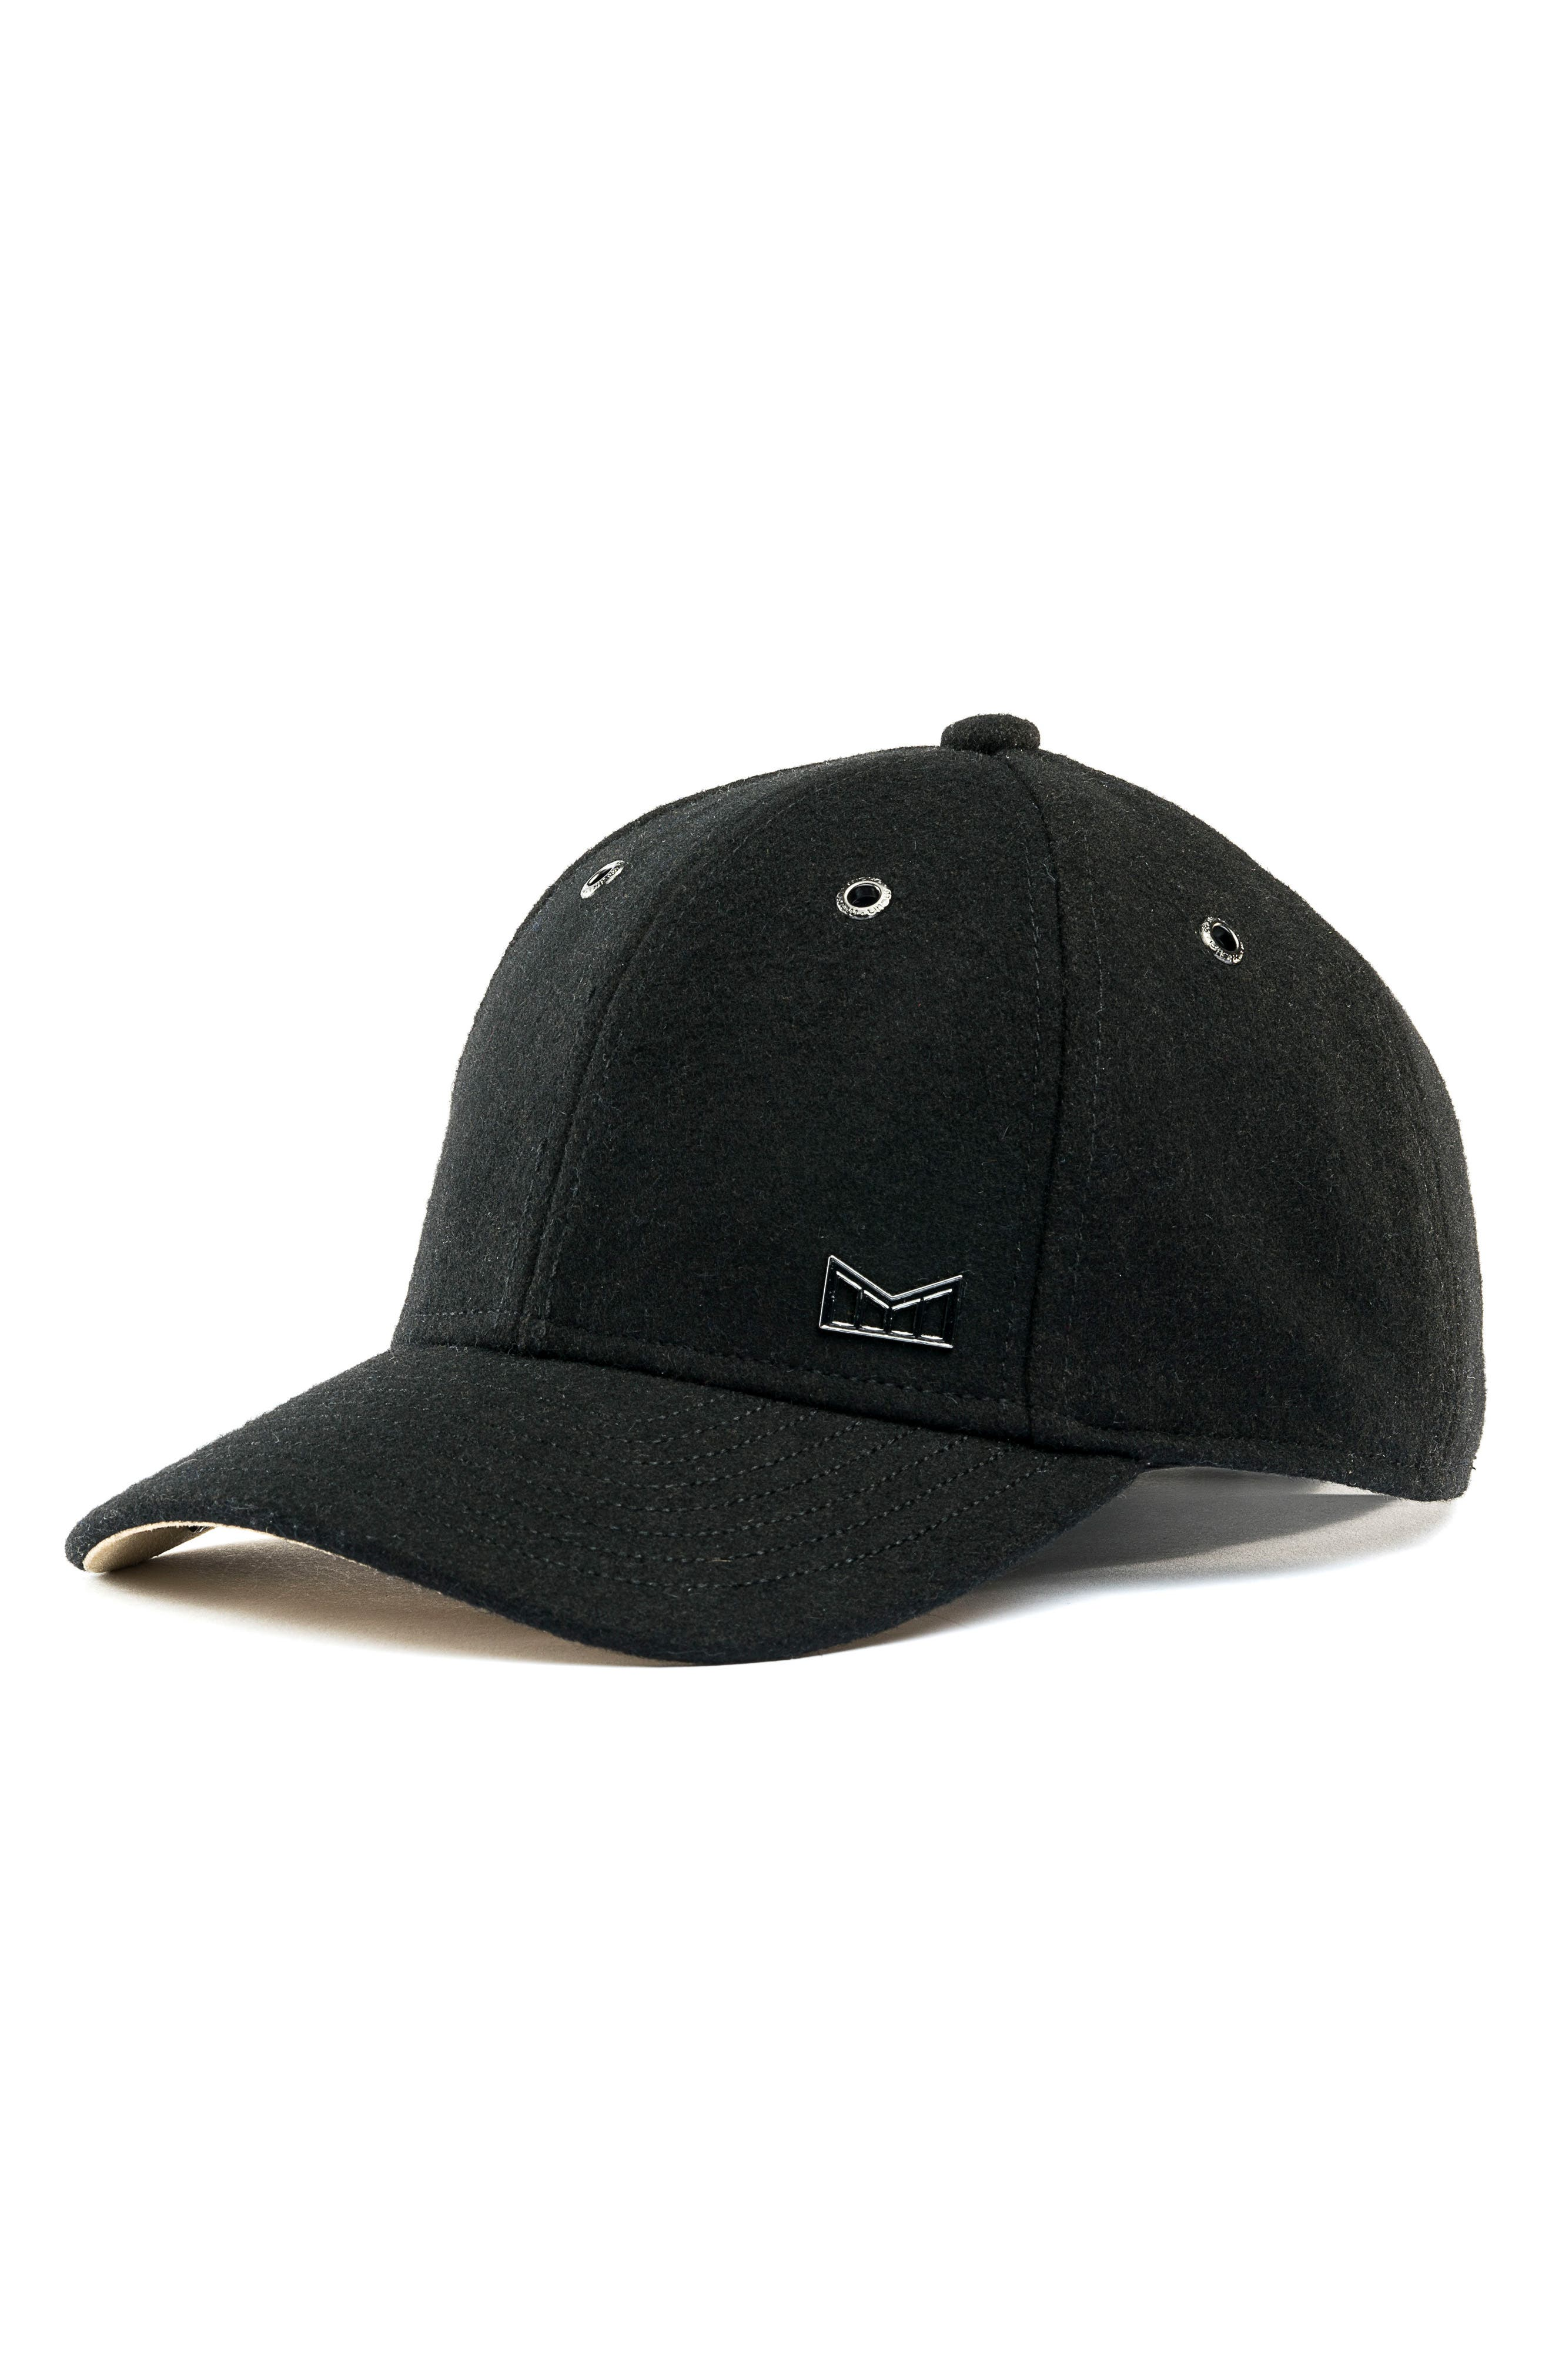 Melin 'Glory Days' Strapback Baseball Cap